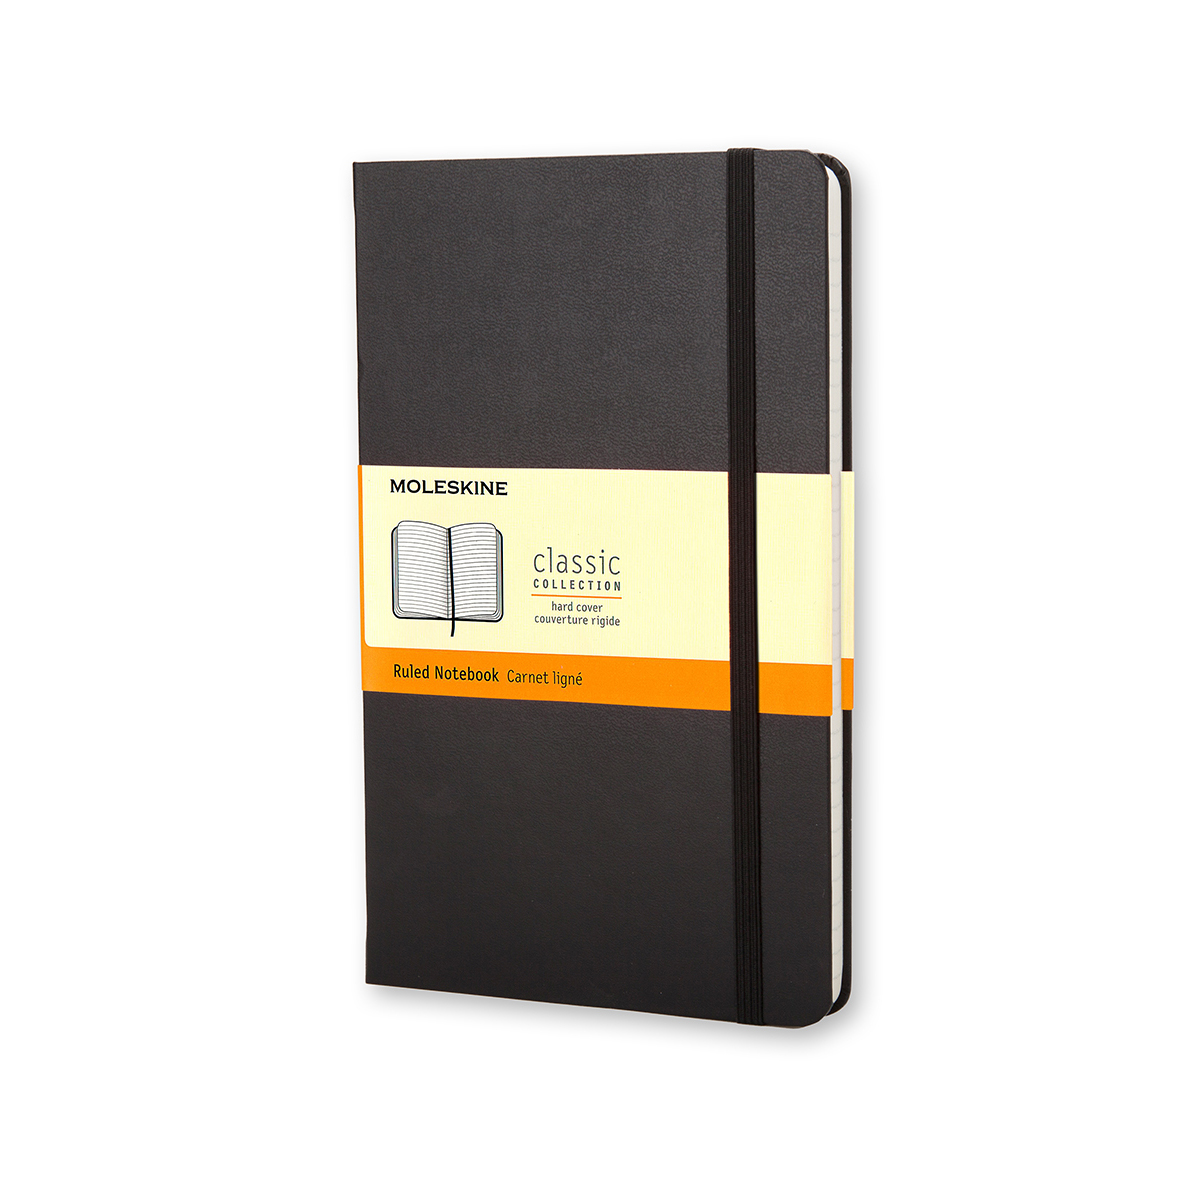 Paper pads or notebooks Moleskine Large Ruled Hardcover 240Pg 130x210mm Black Ref QP060